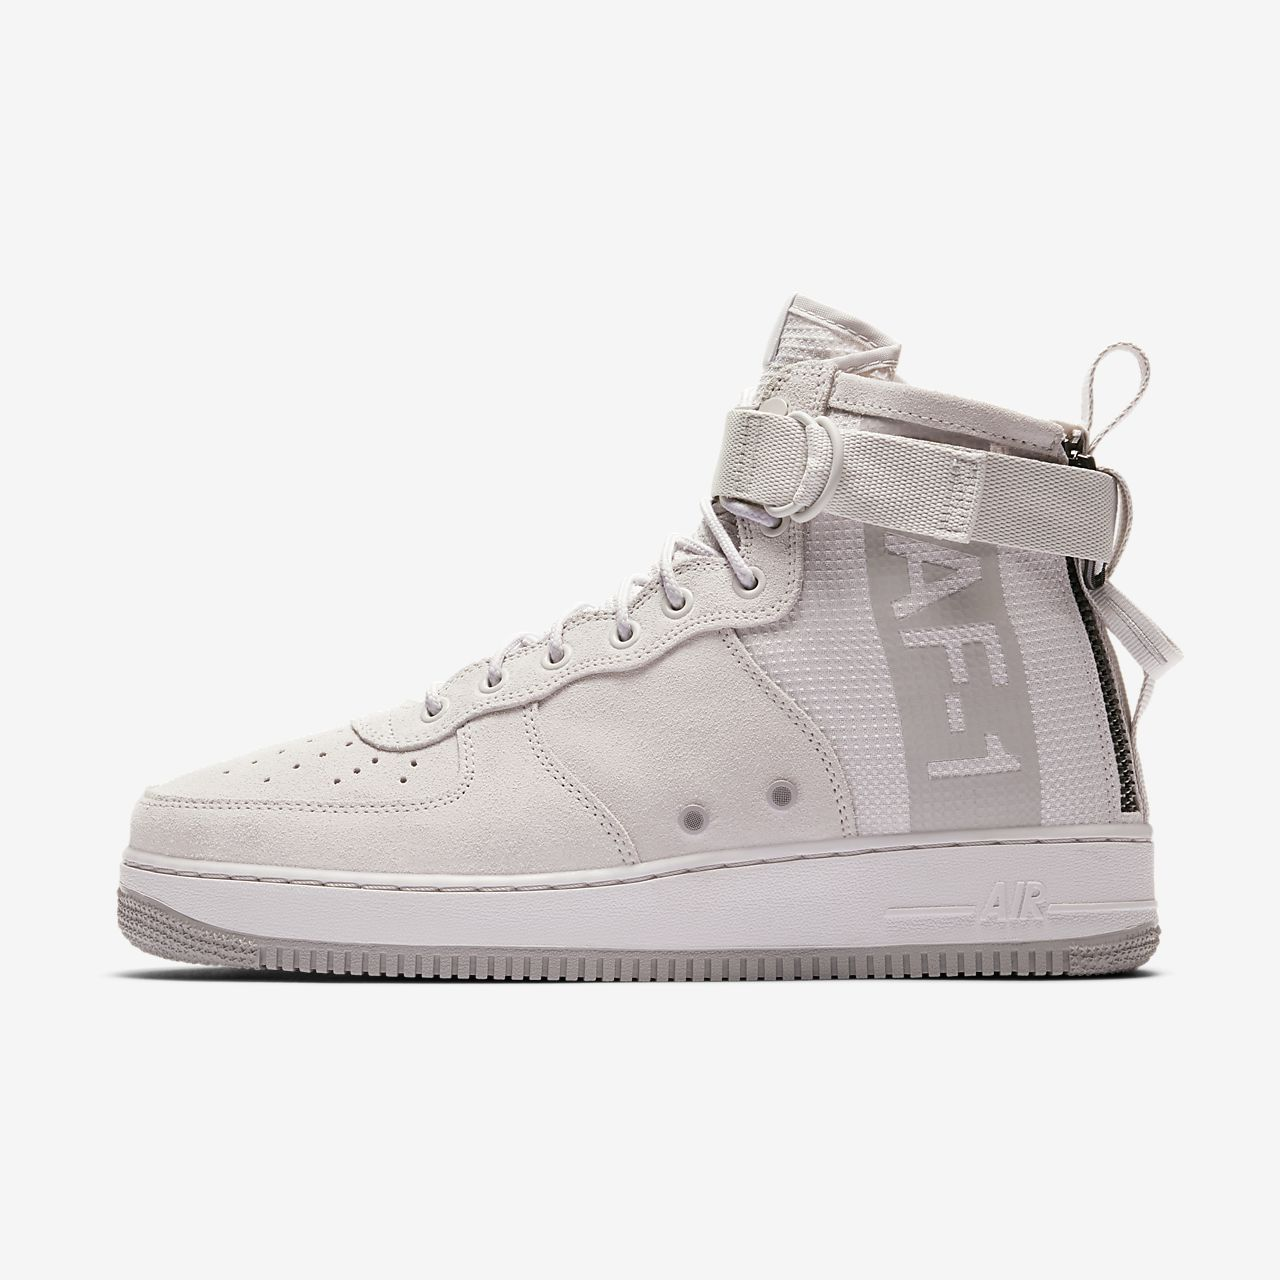 Nike SF Air Force 1 Mid Men's Lifestyle Shoes White/Grey yA5595G